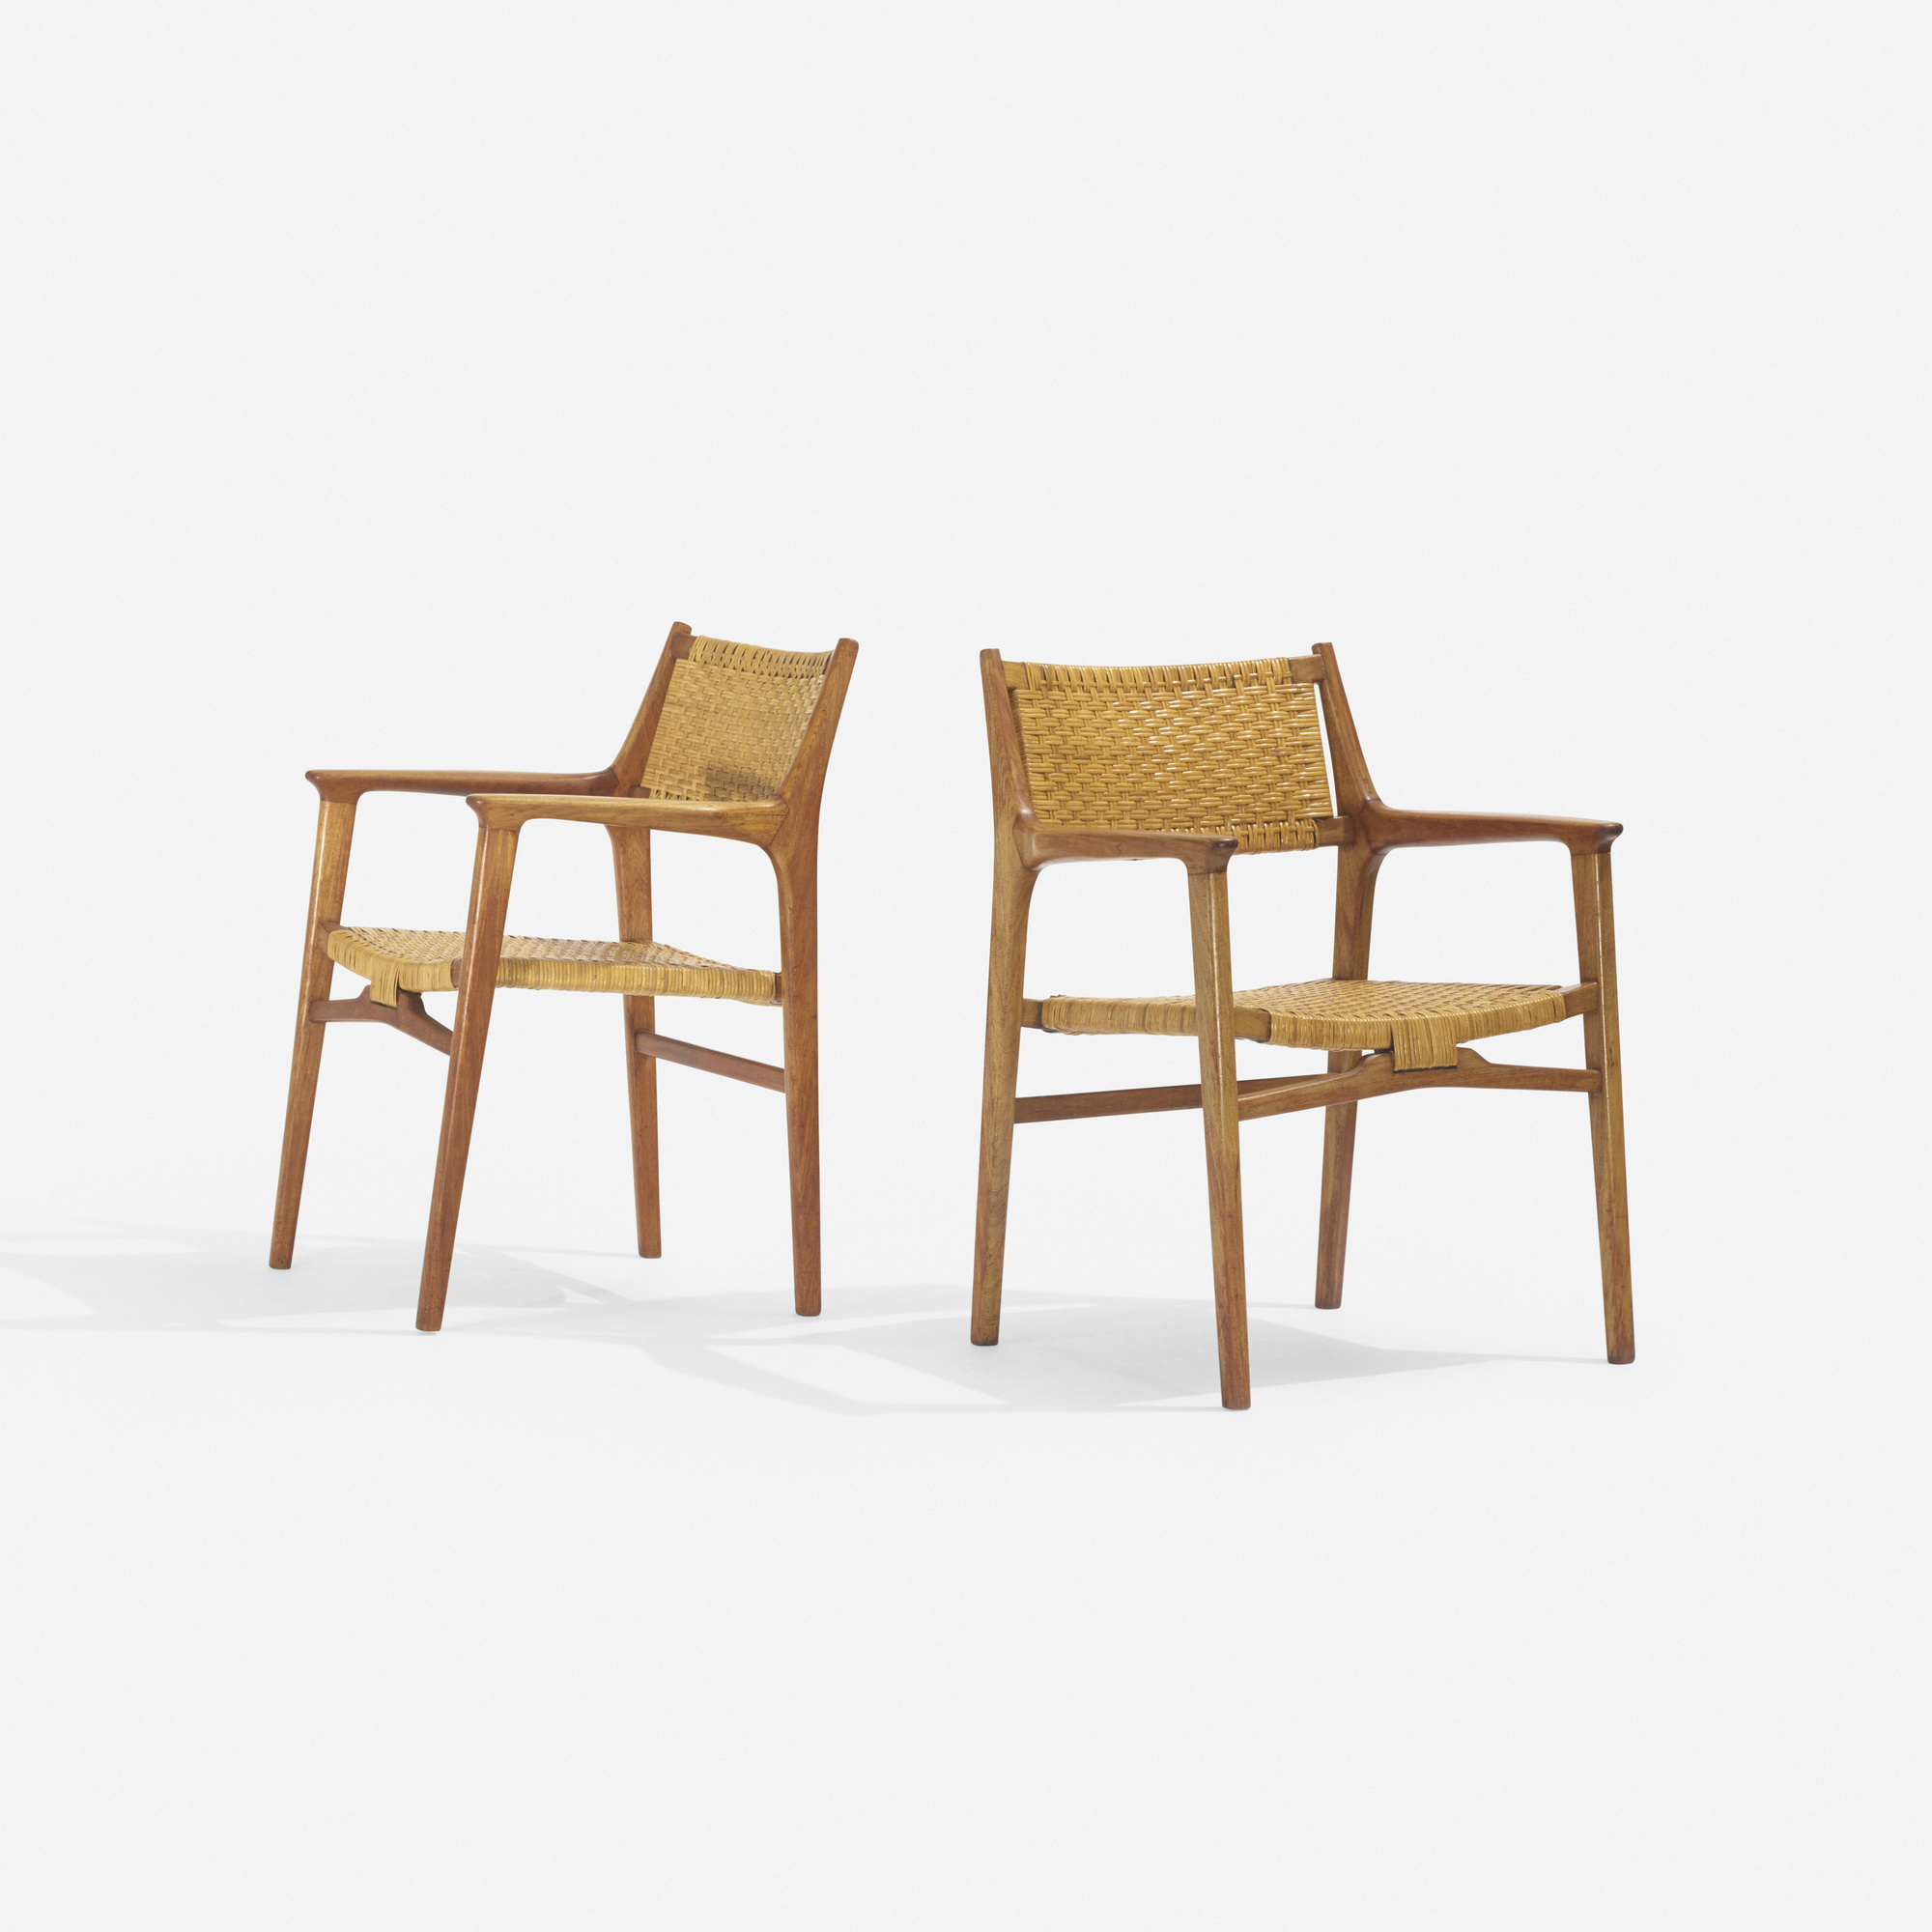 281: Hans J. Wegner / rare lounge chairs, pair (2 of 3)